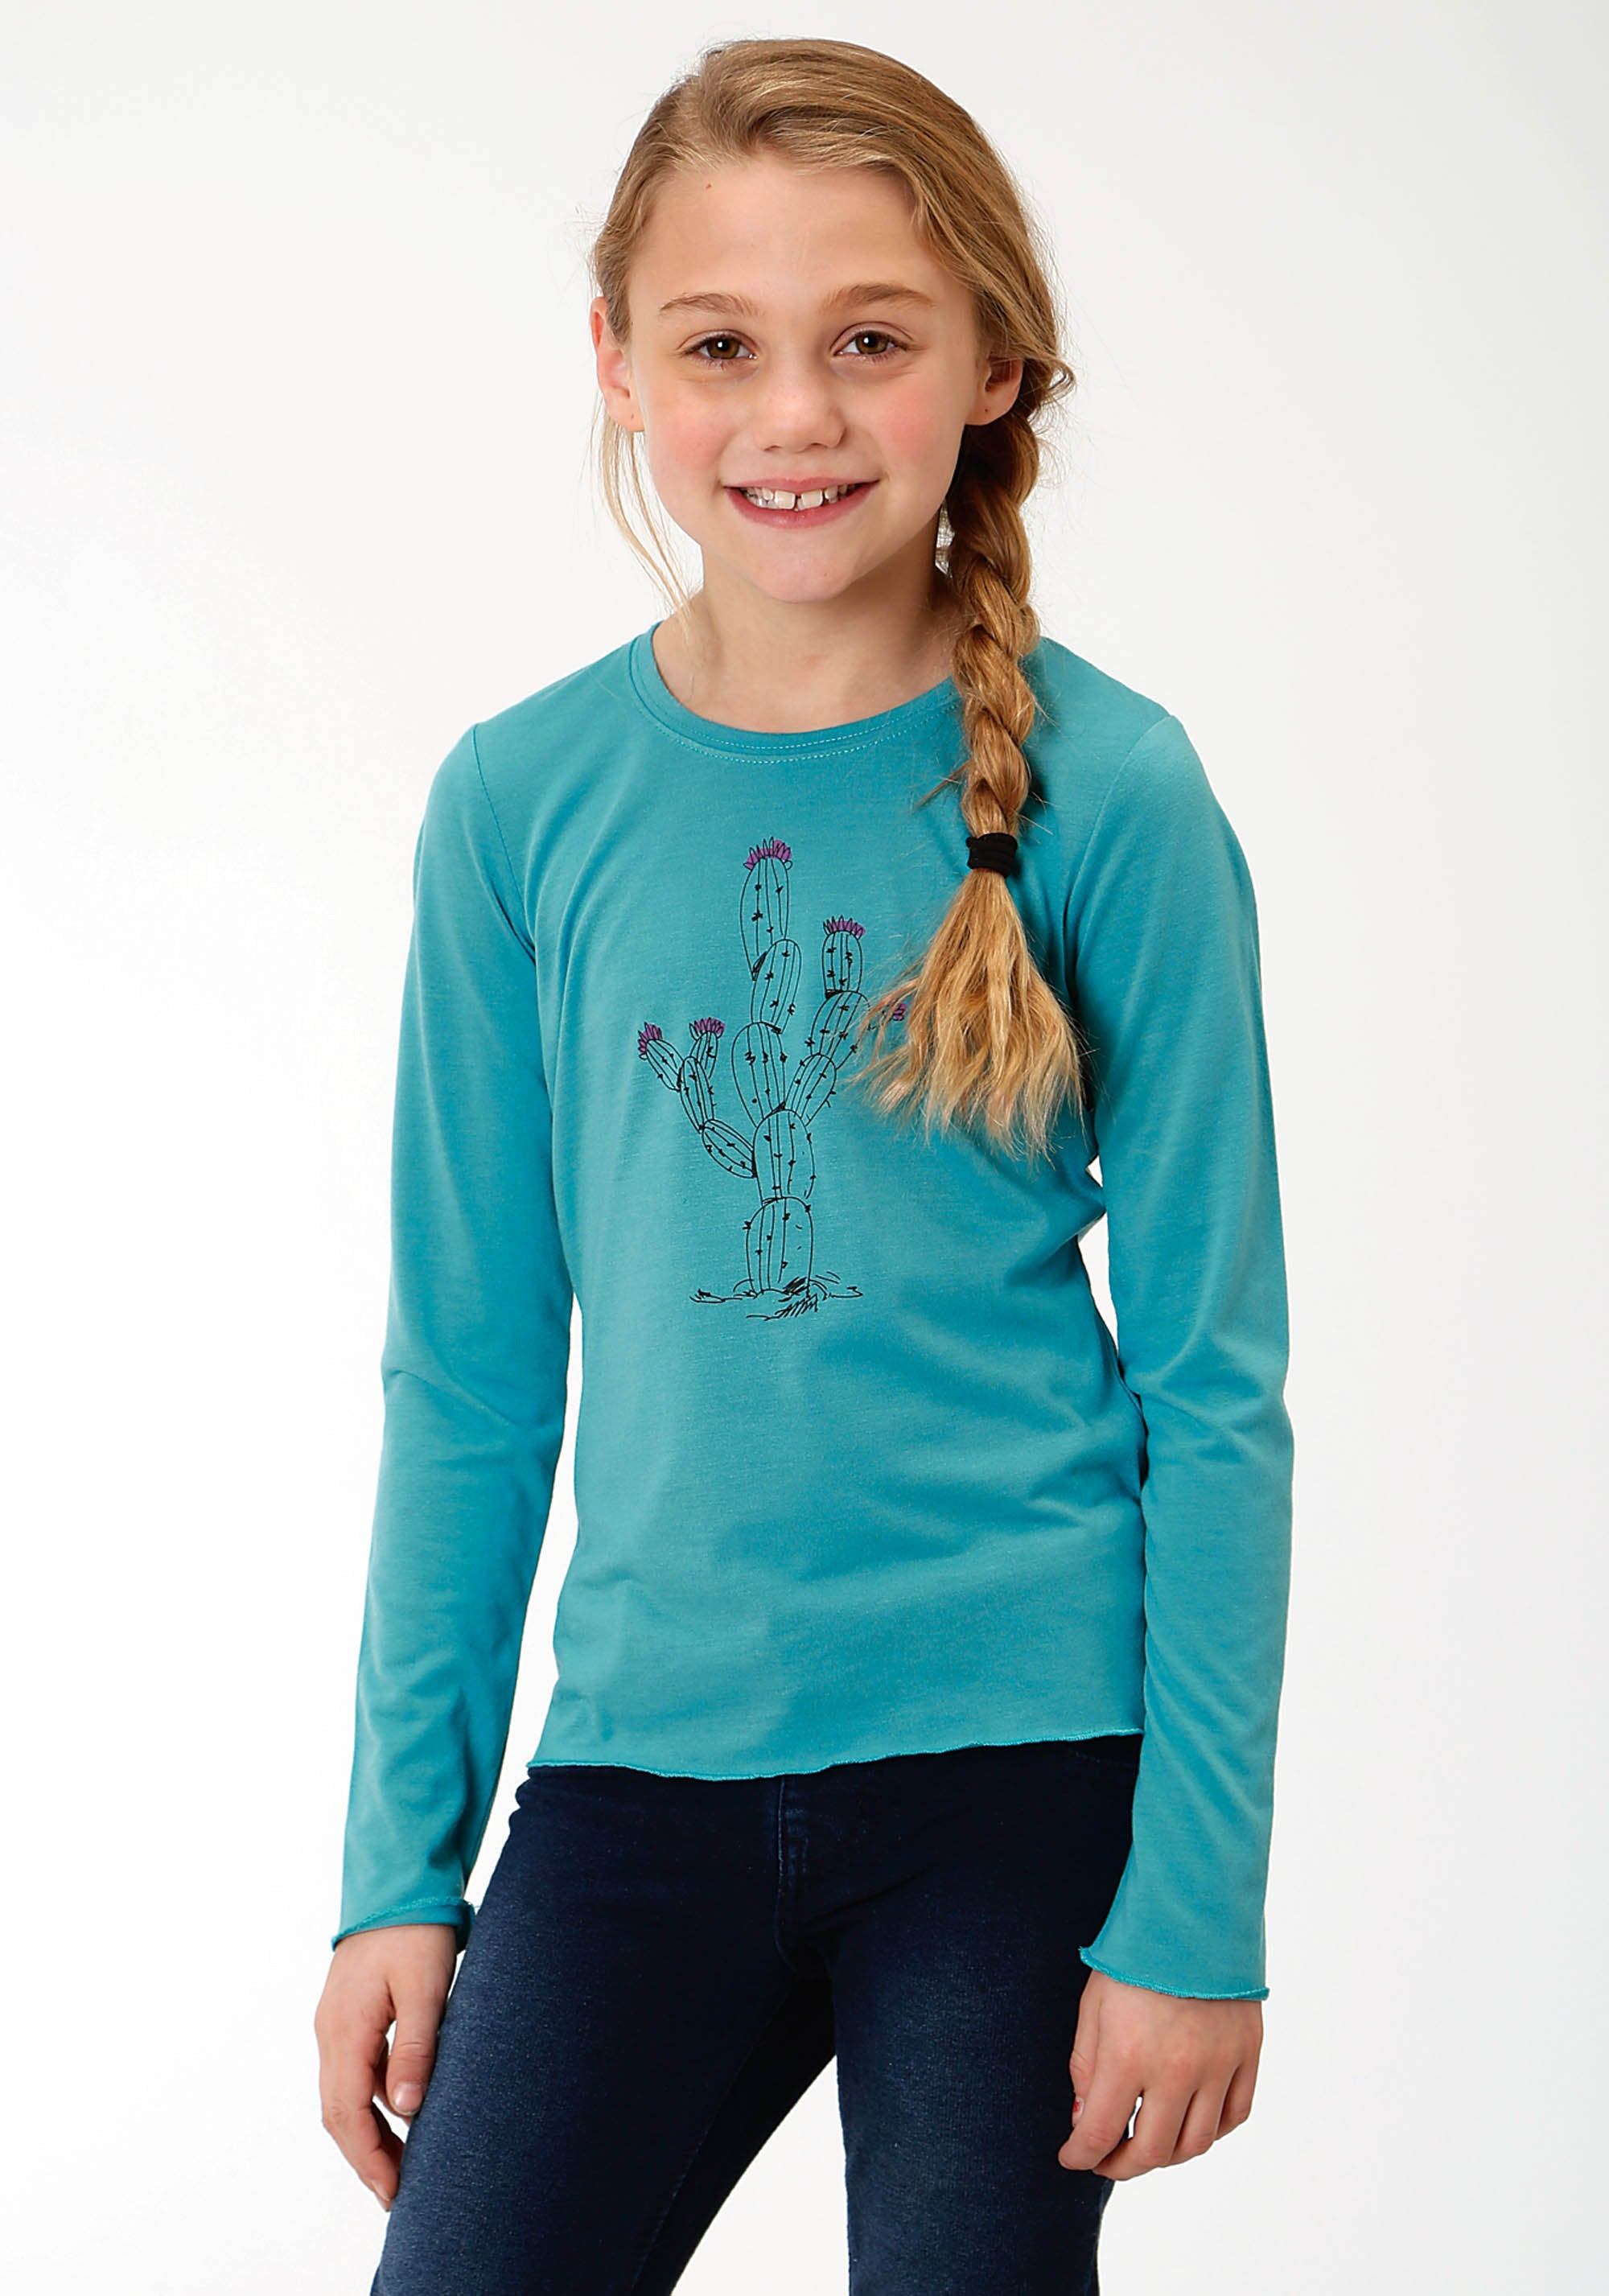 ROPER GIRLS BLUE 0490 P/R JERSEY GIRLS LS CRE NECK TEE FIVE STAR GIRLS LONG SLEEVE